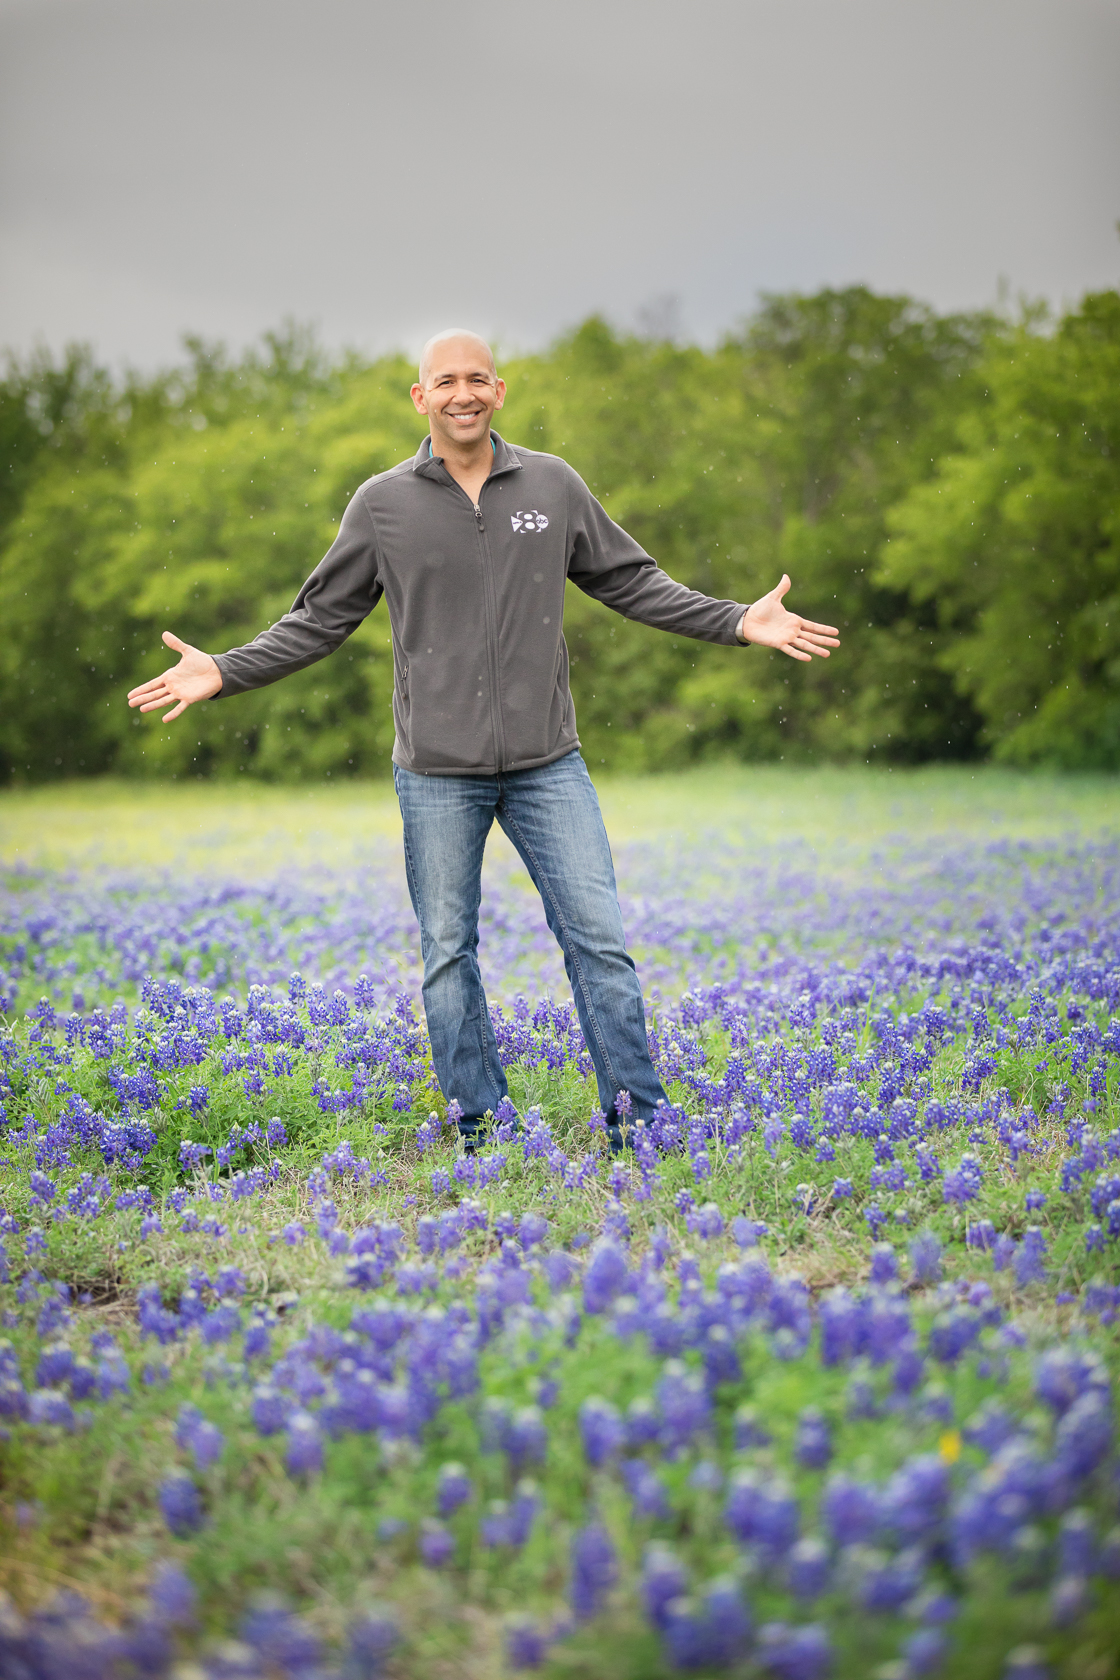 Grapevine Colleyville Southlake Photographer | Dallas Fort